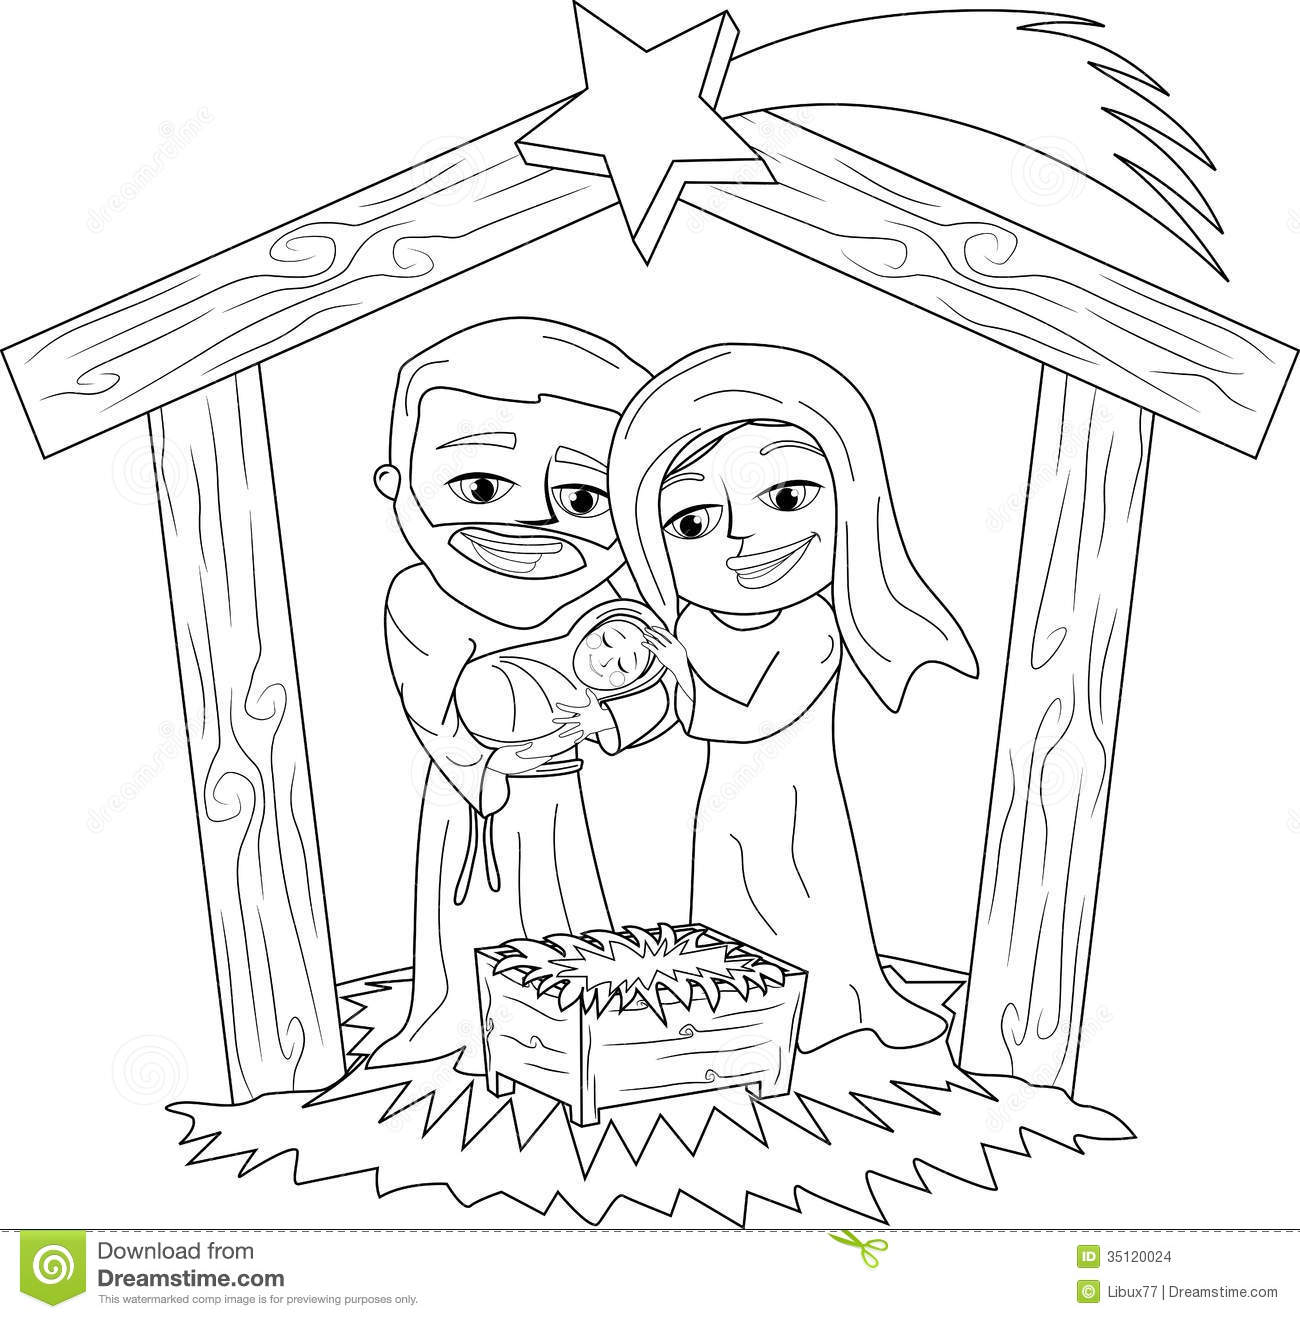 Colouring sheets nativity scene - Christmas Nativity Scene Coloring Page